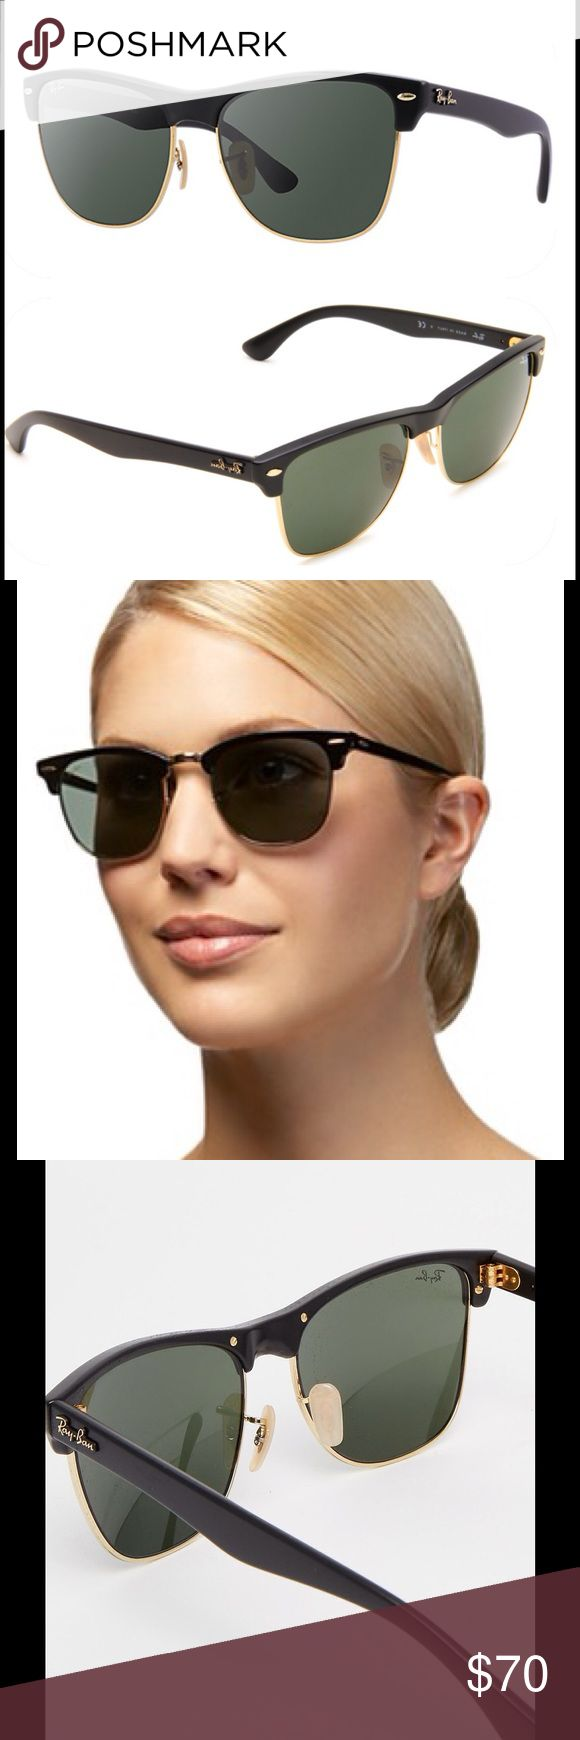 New Ray-Ban Oversized Clubmaster Sunglasses Black RB4175 877 57-16 Born from a mesh between two of Ray-Ban's most iconic and popular sunglasses - the Clubmaster and Wayfarer - are truly one of a kind. Clubmaster sunglasses feature oversized oval lenses paired with Clubmaster-inspired top-rimmed frames and Wayfarer-inspired temple and frame design. These sunglasses have a contemporary design yet maintain a retro feel. The larger lenses provide a fashionable look and are flattering on most…